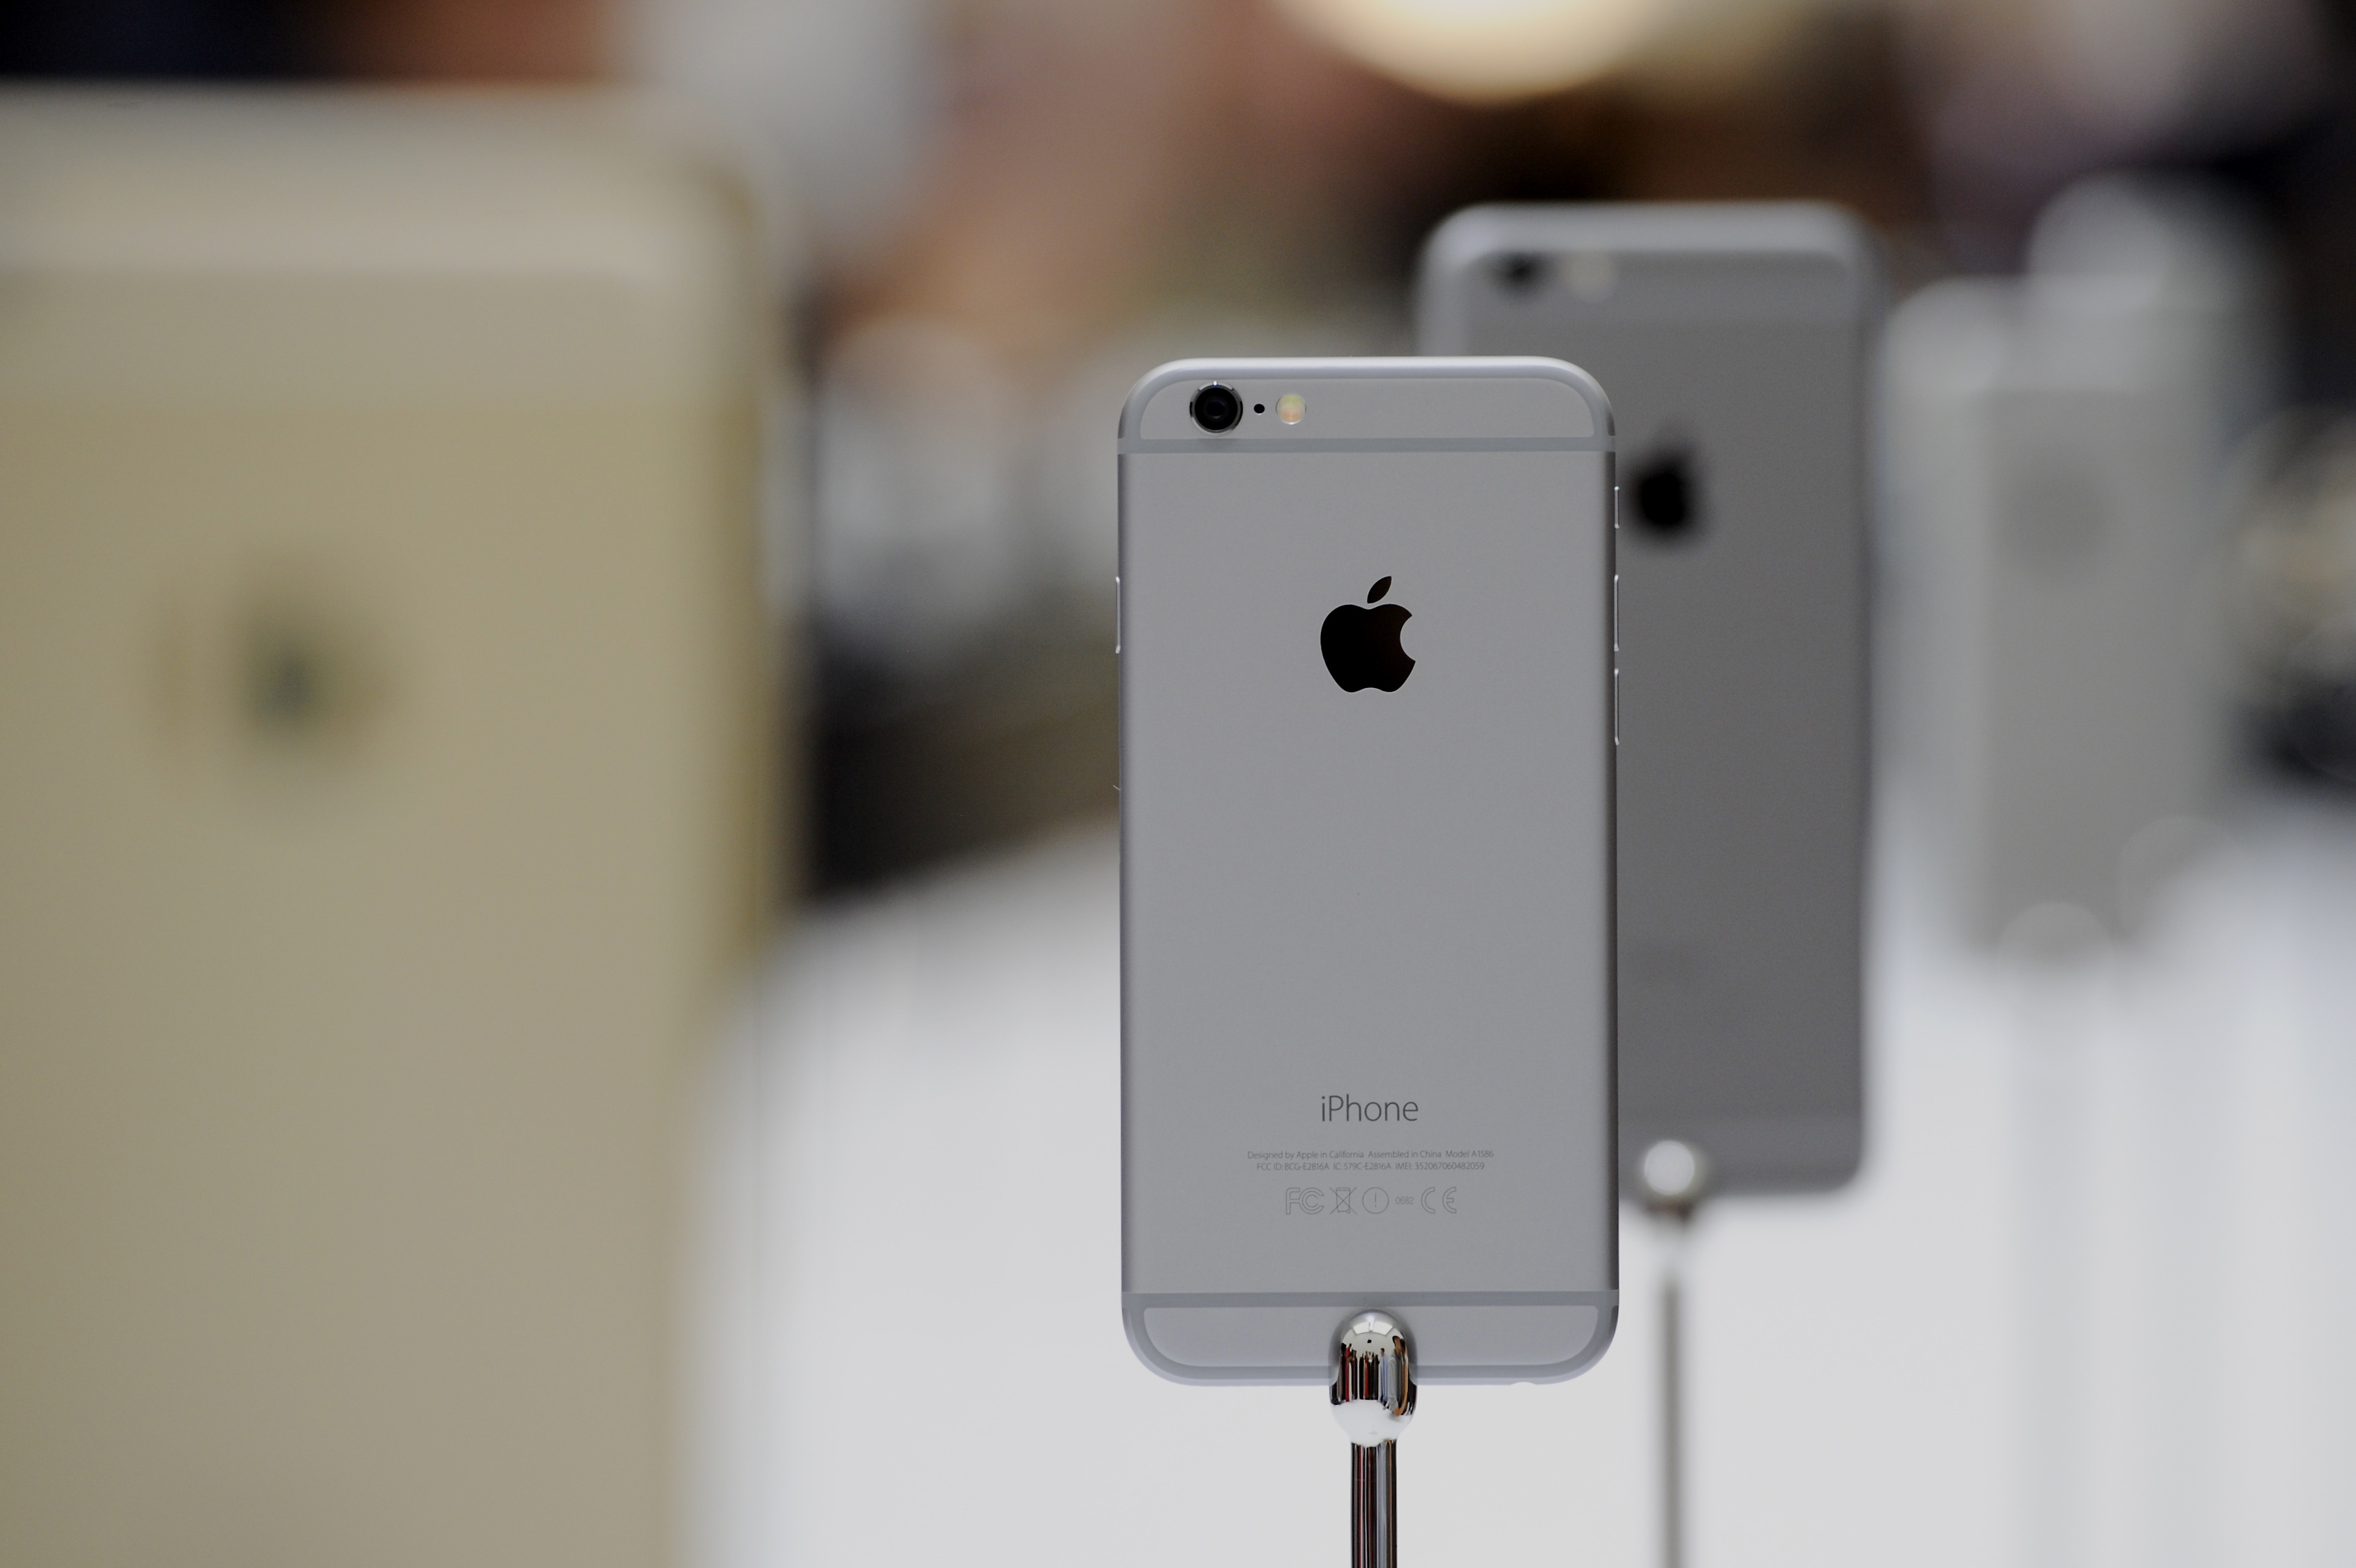 The new Apple Inc. iPhone 6 is displayed after a product announcement at Flint Center in Cupertino, Calif., Sept. 9, 2014.